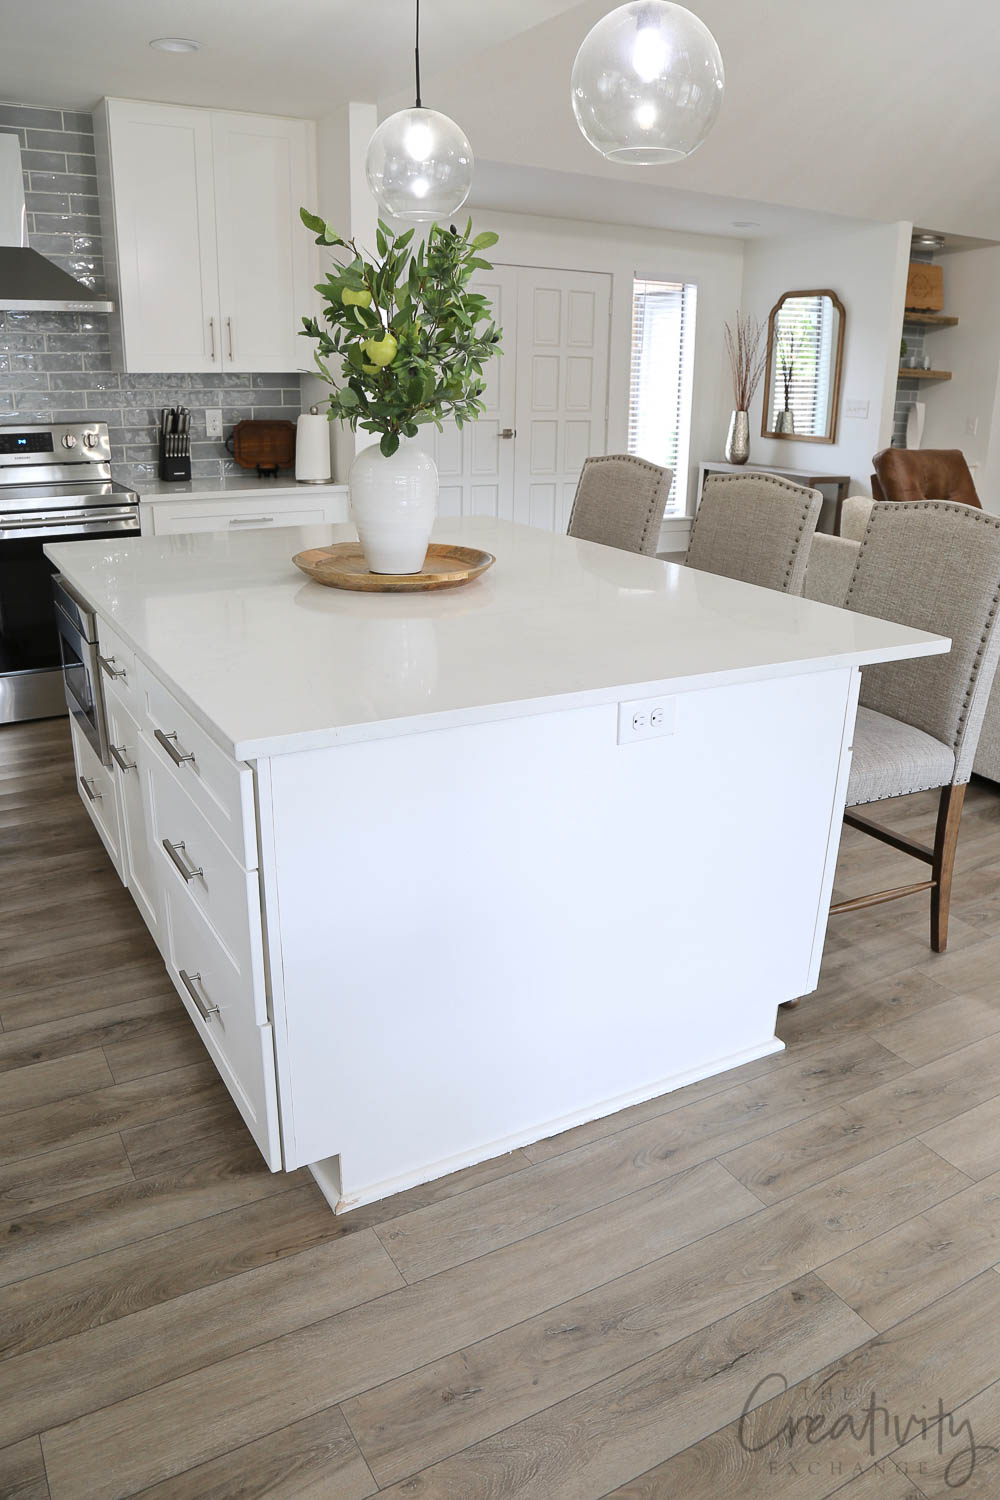 Large center kitchen island